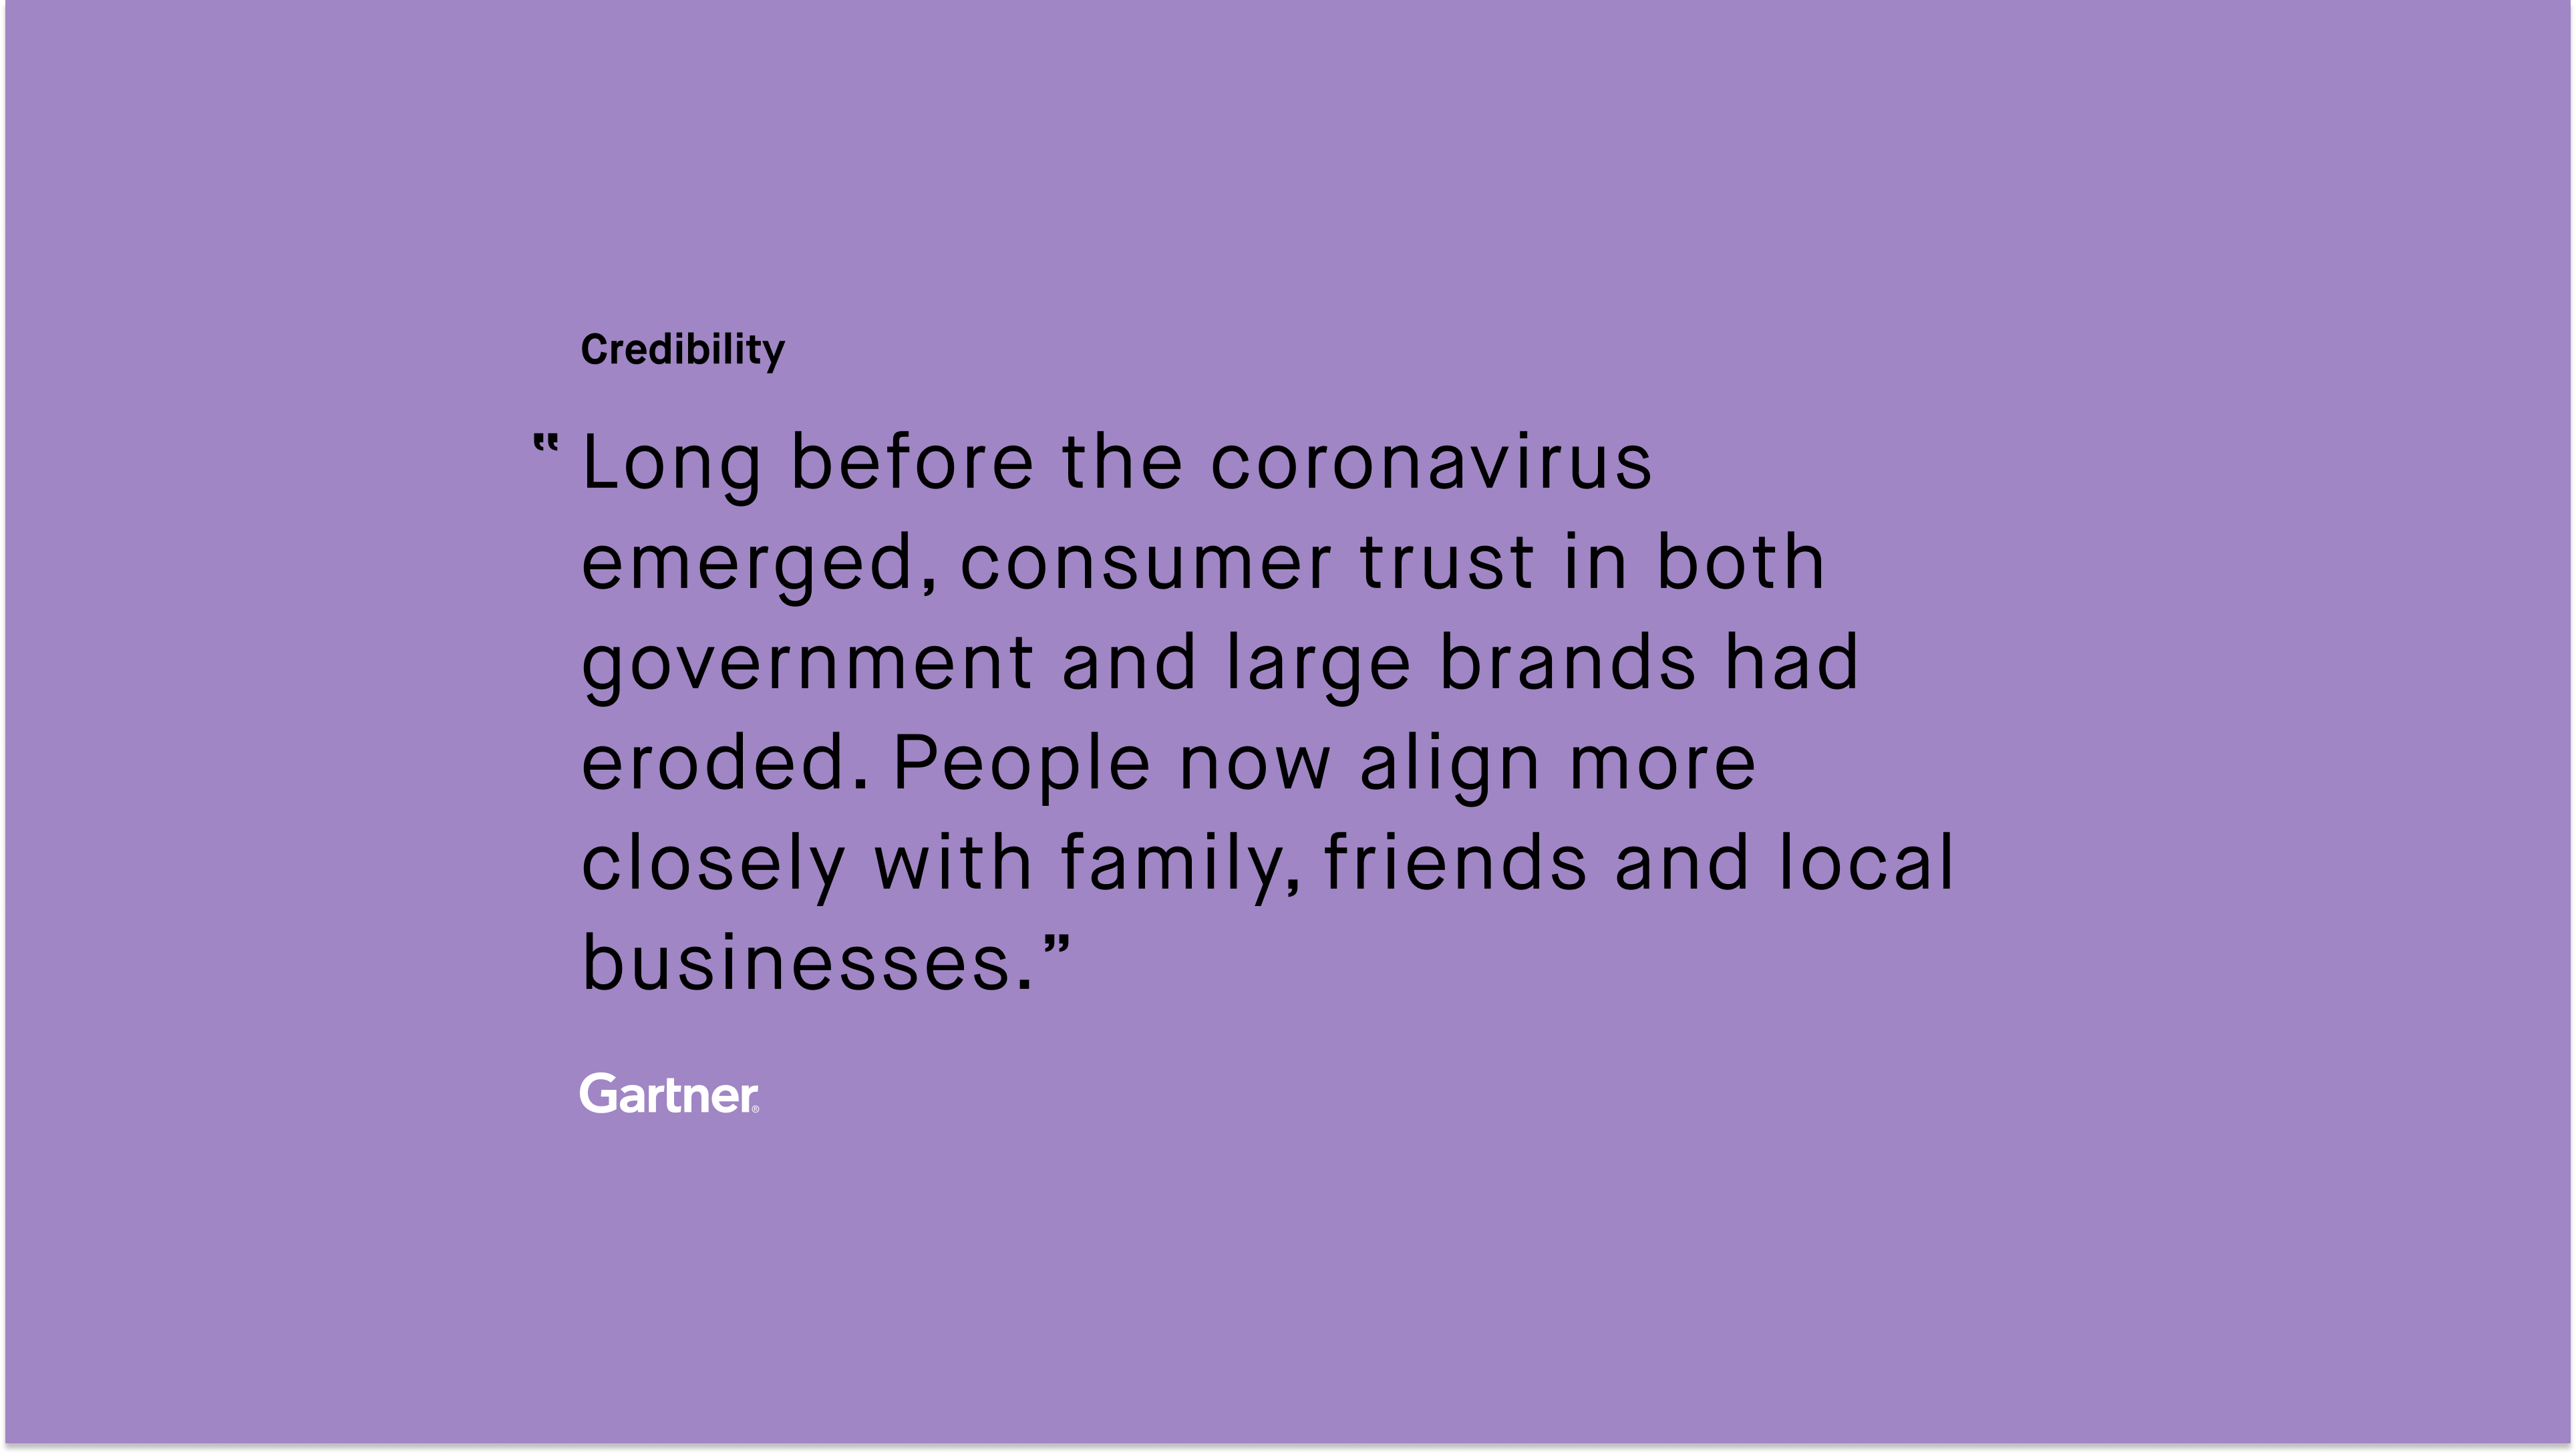 #paid_Gartne_Long before the coronavirus emerged, consumer trust in both government and large brands had eroded.